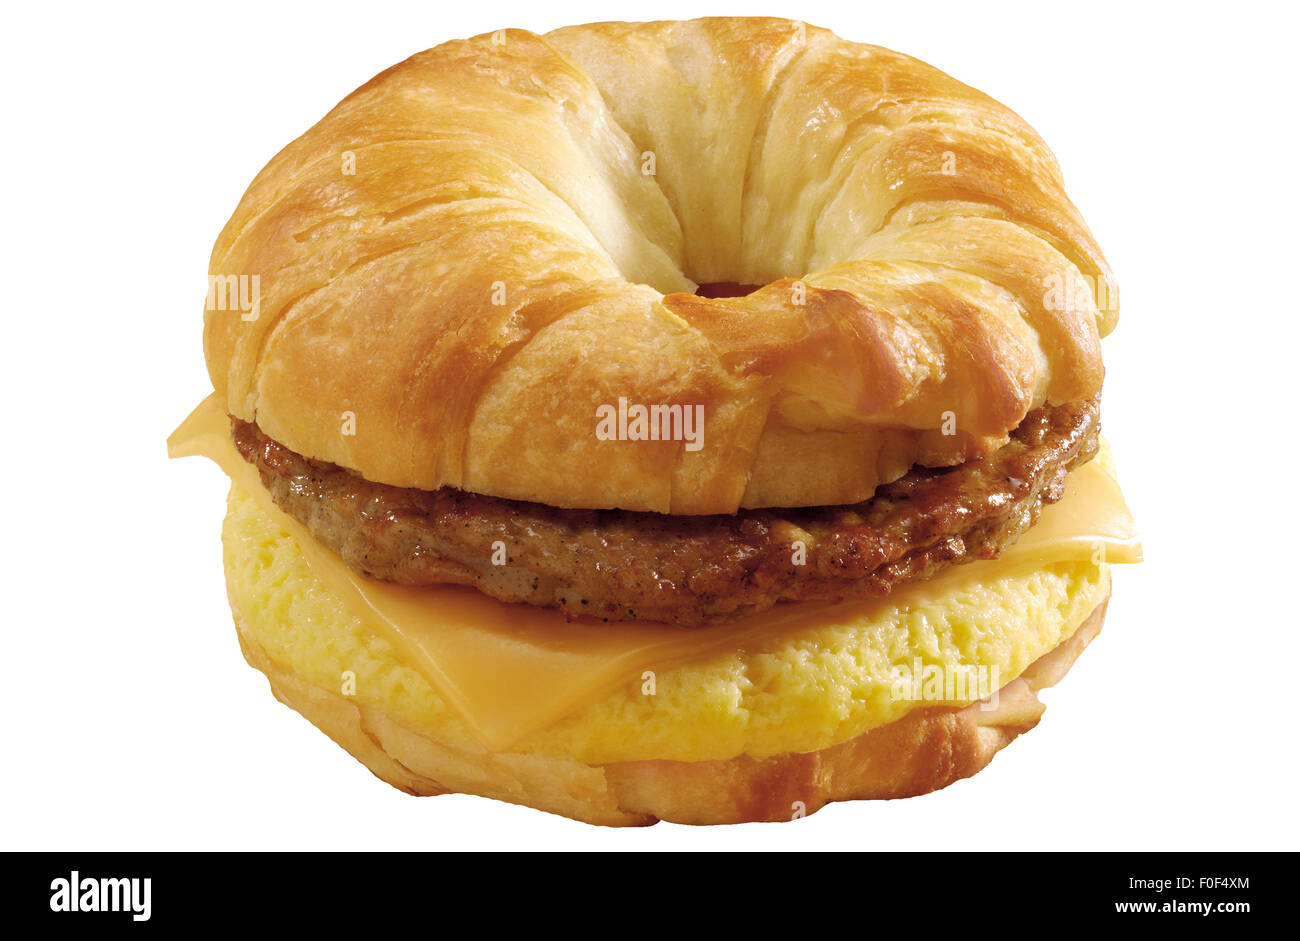 Breakfast Sandwich, Croissant, Cheese, Scrambled Egg, Sausage - Stock Image